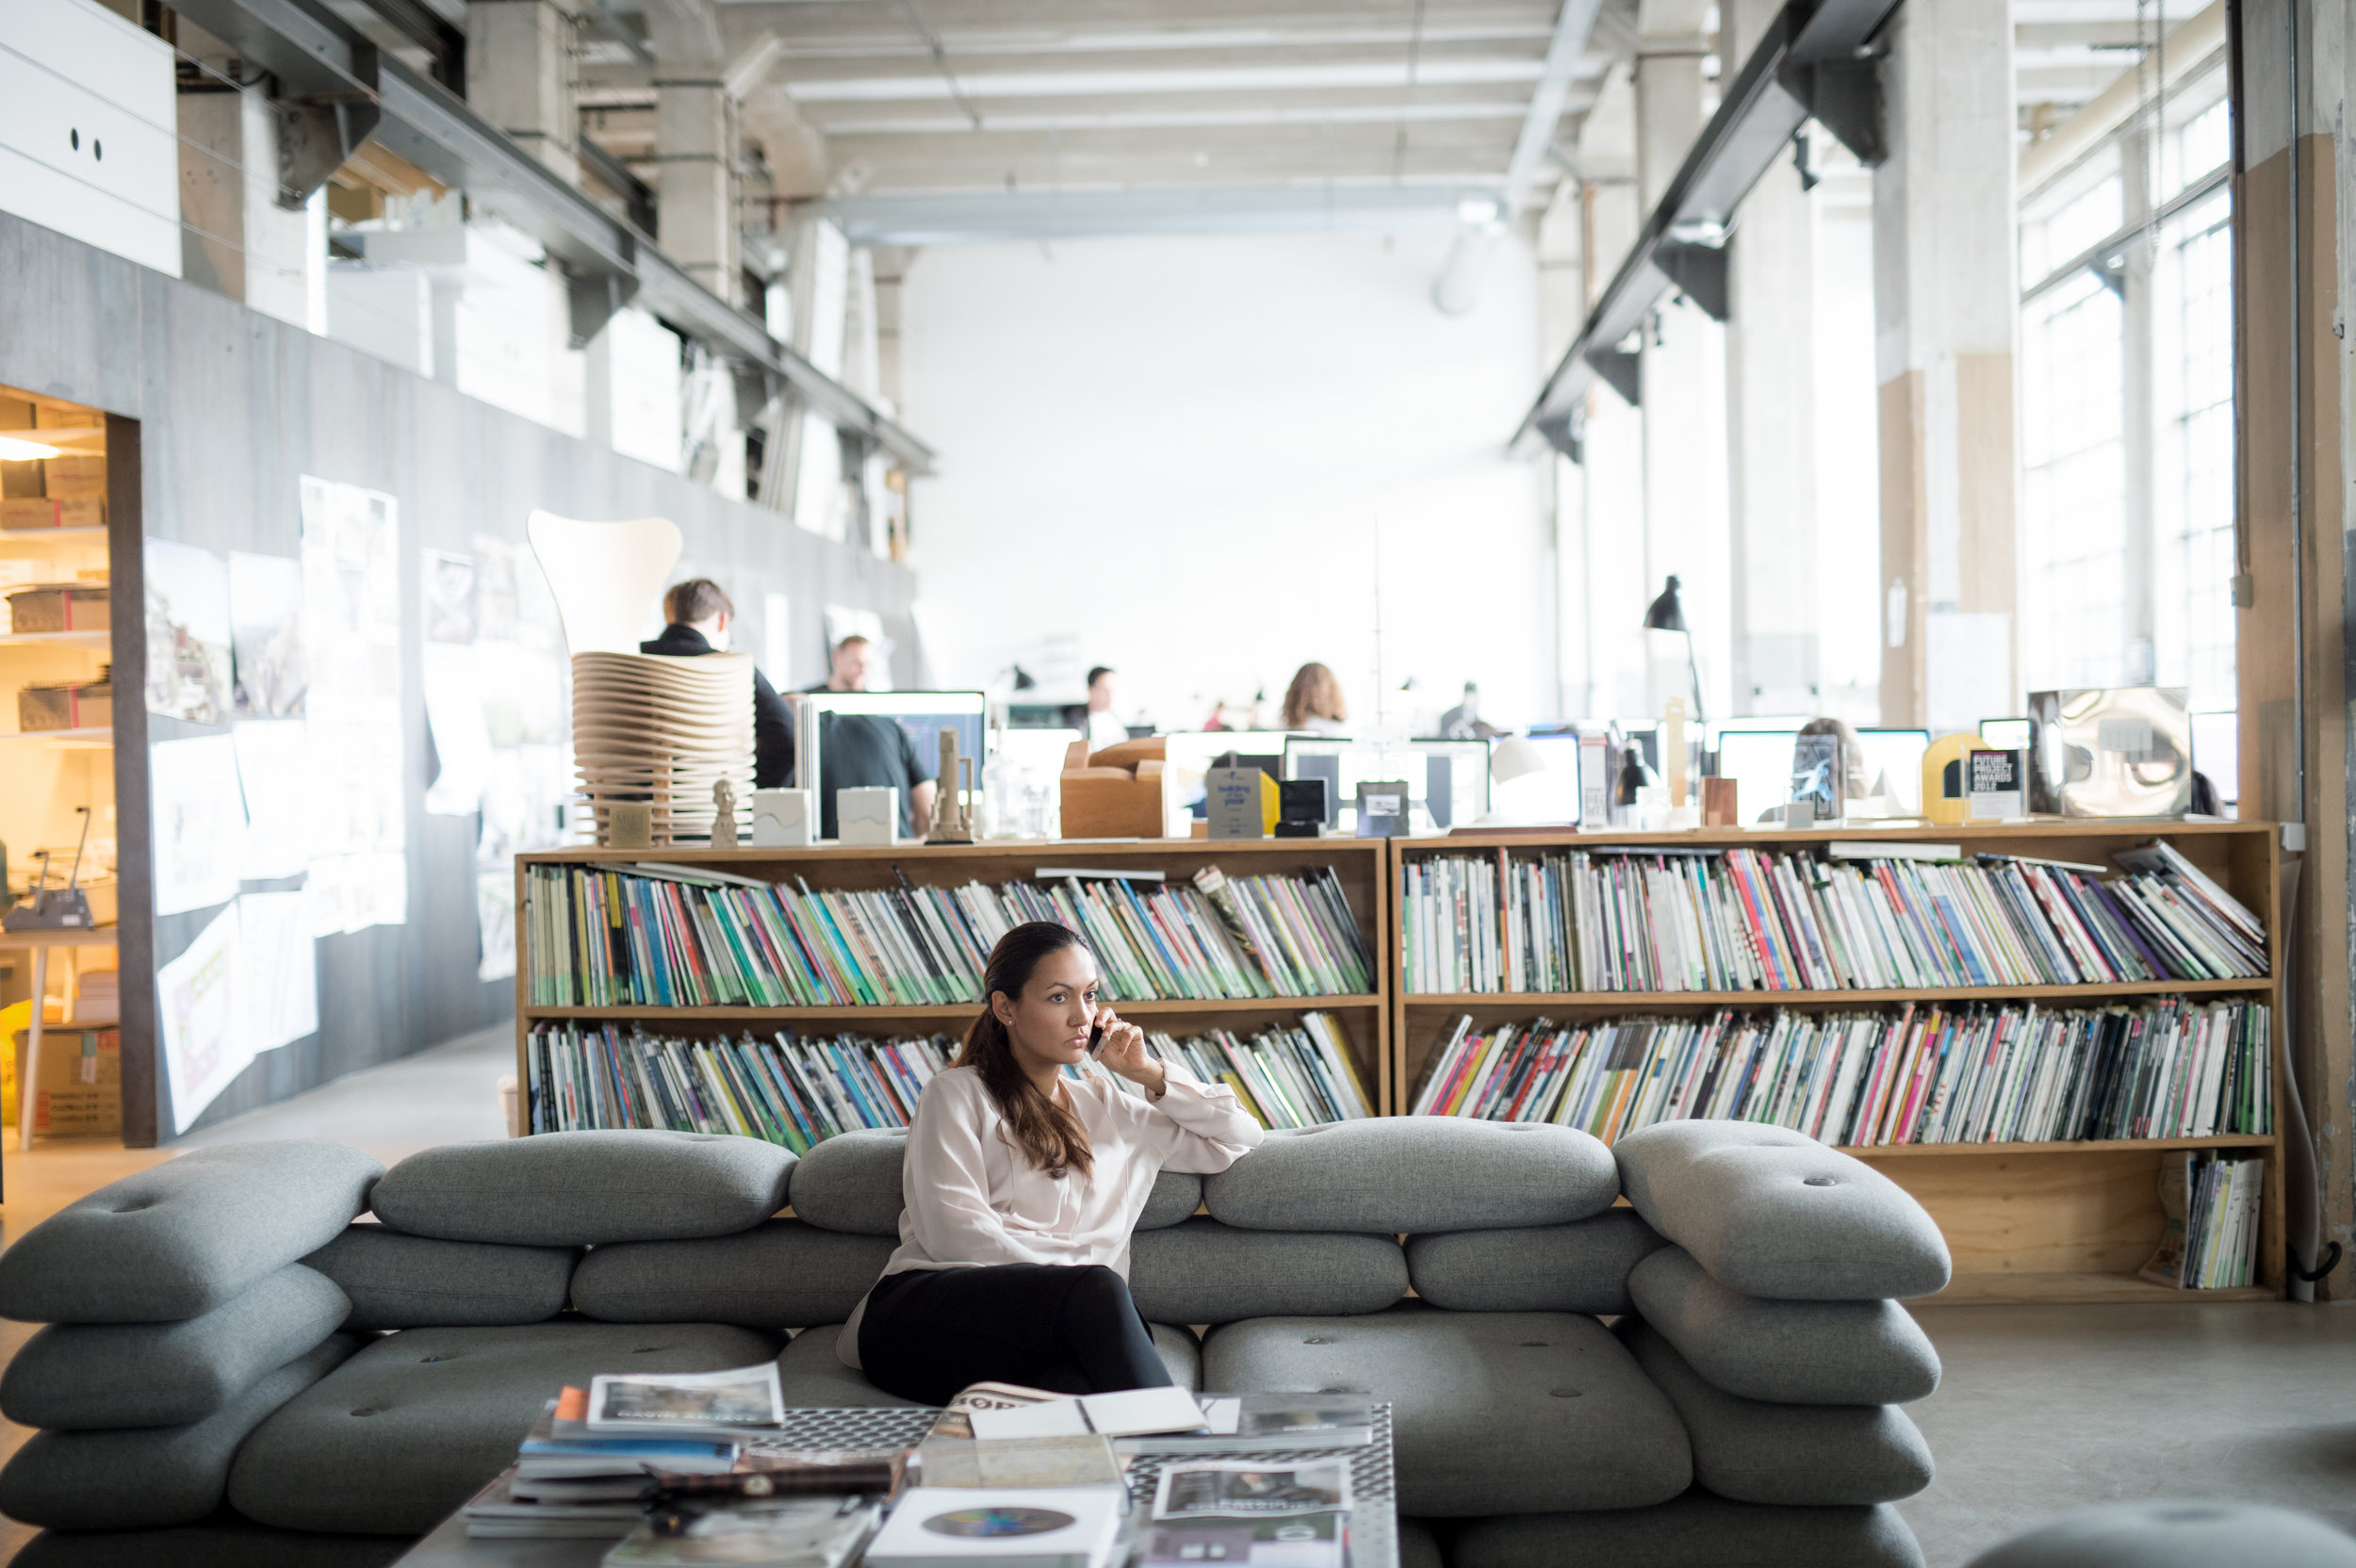 Sheela divides her time between BIG's offices in NYC, London and Copenhagen (above) - photo by Flemming Leitorp.